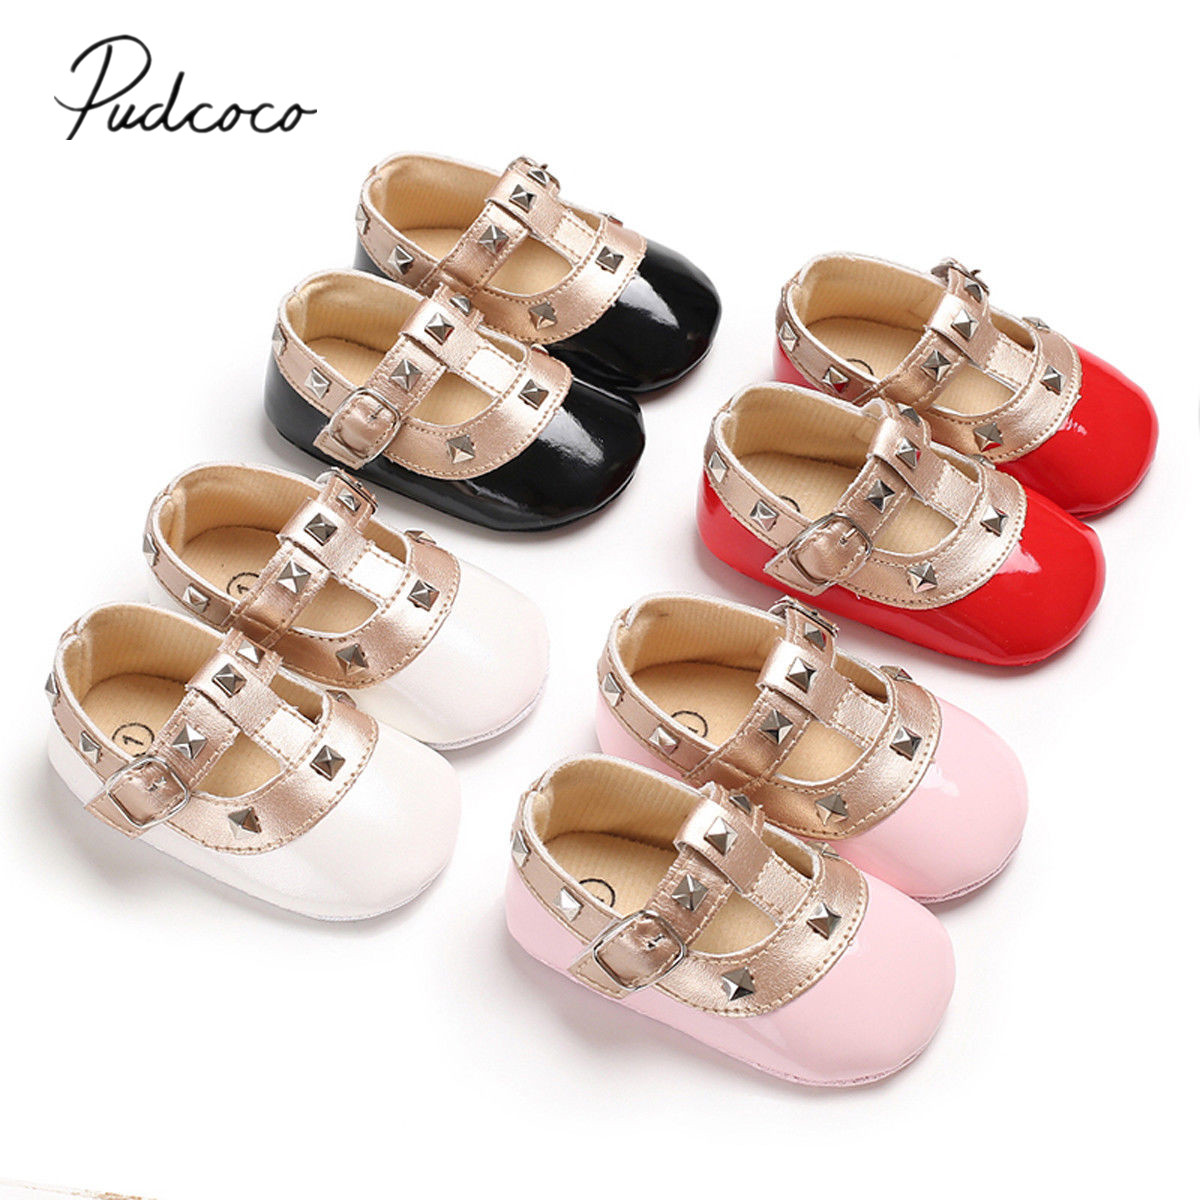 Pudcoco 2018 Newborn Baby Girl Bow Princess Shoes Soft Sole